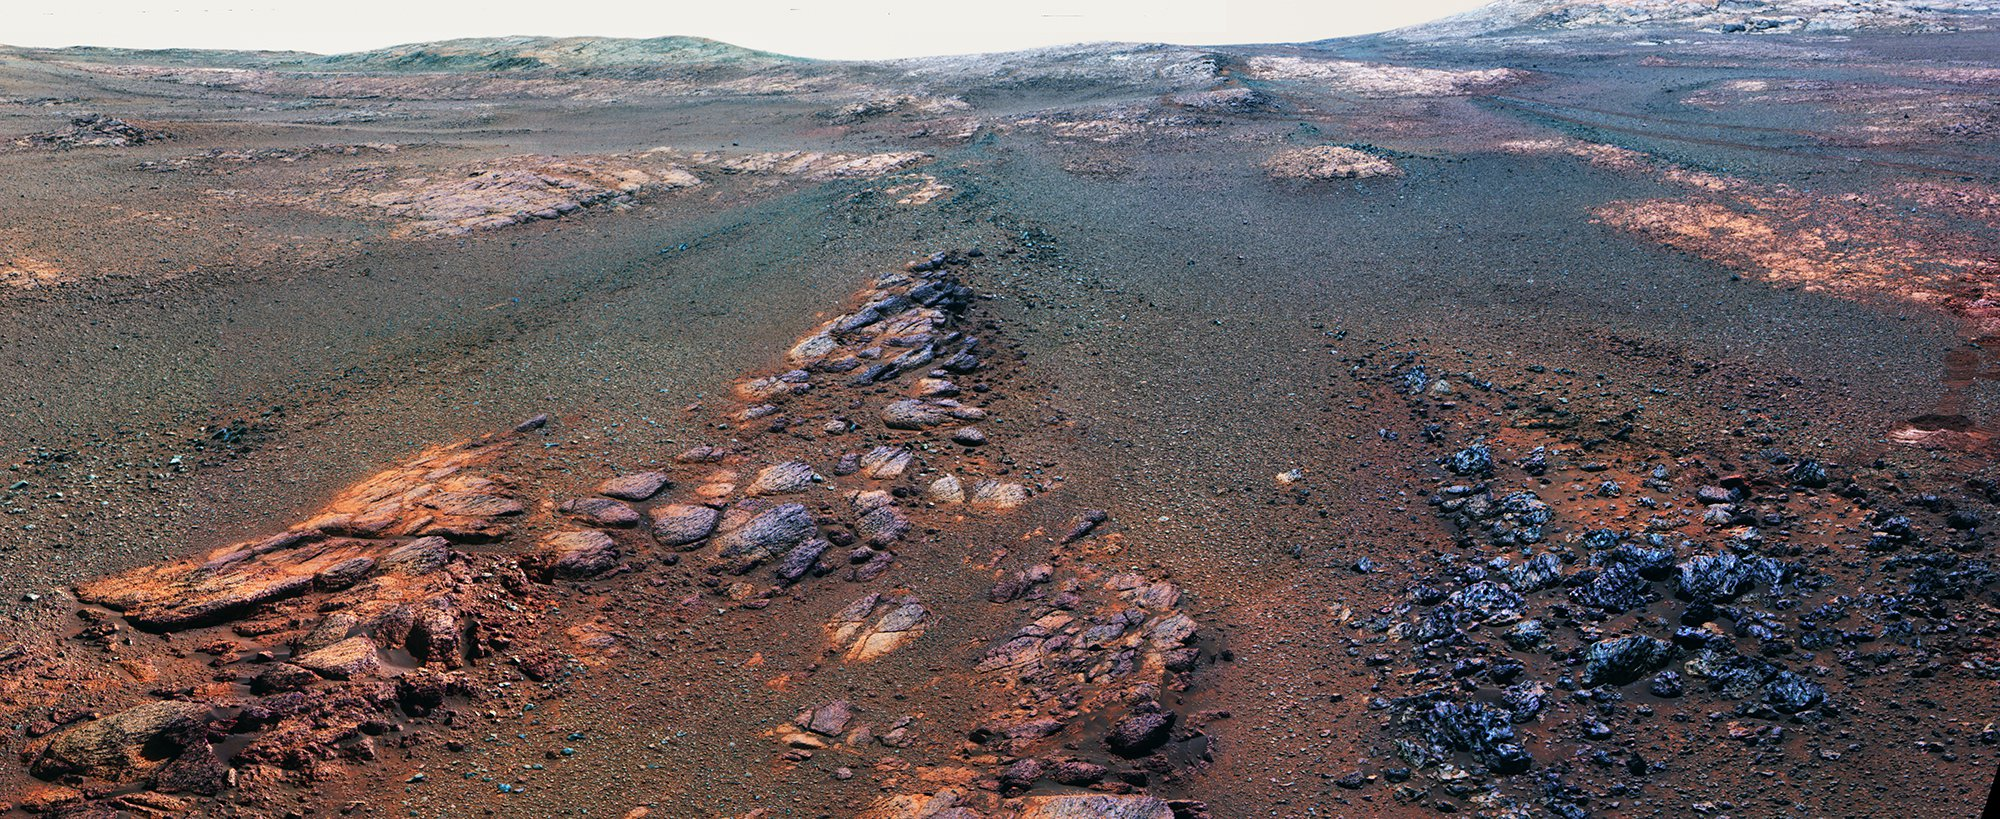 This is the last picture of Mars taken by Nasa's Opportunity rover